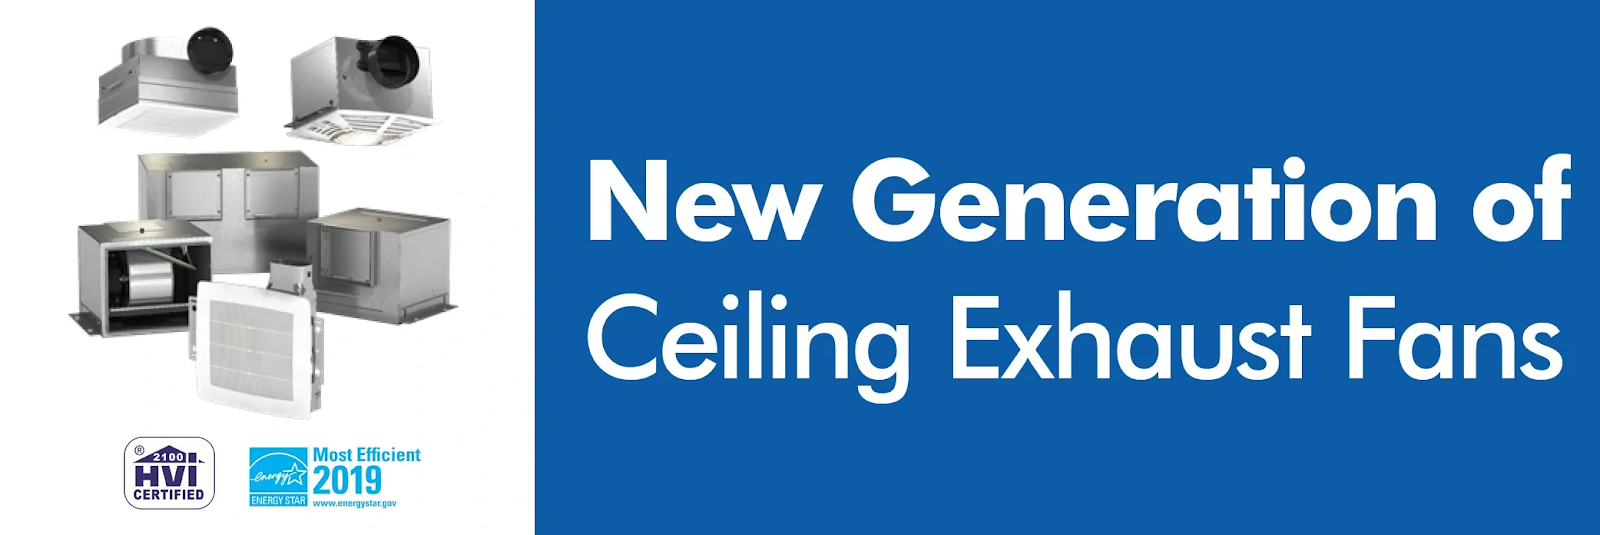 Greenheck Is Excited To Introduce The Next Generation Of Ceiling